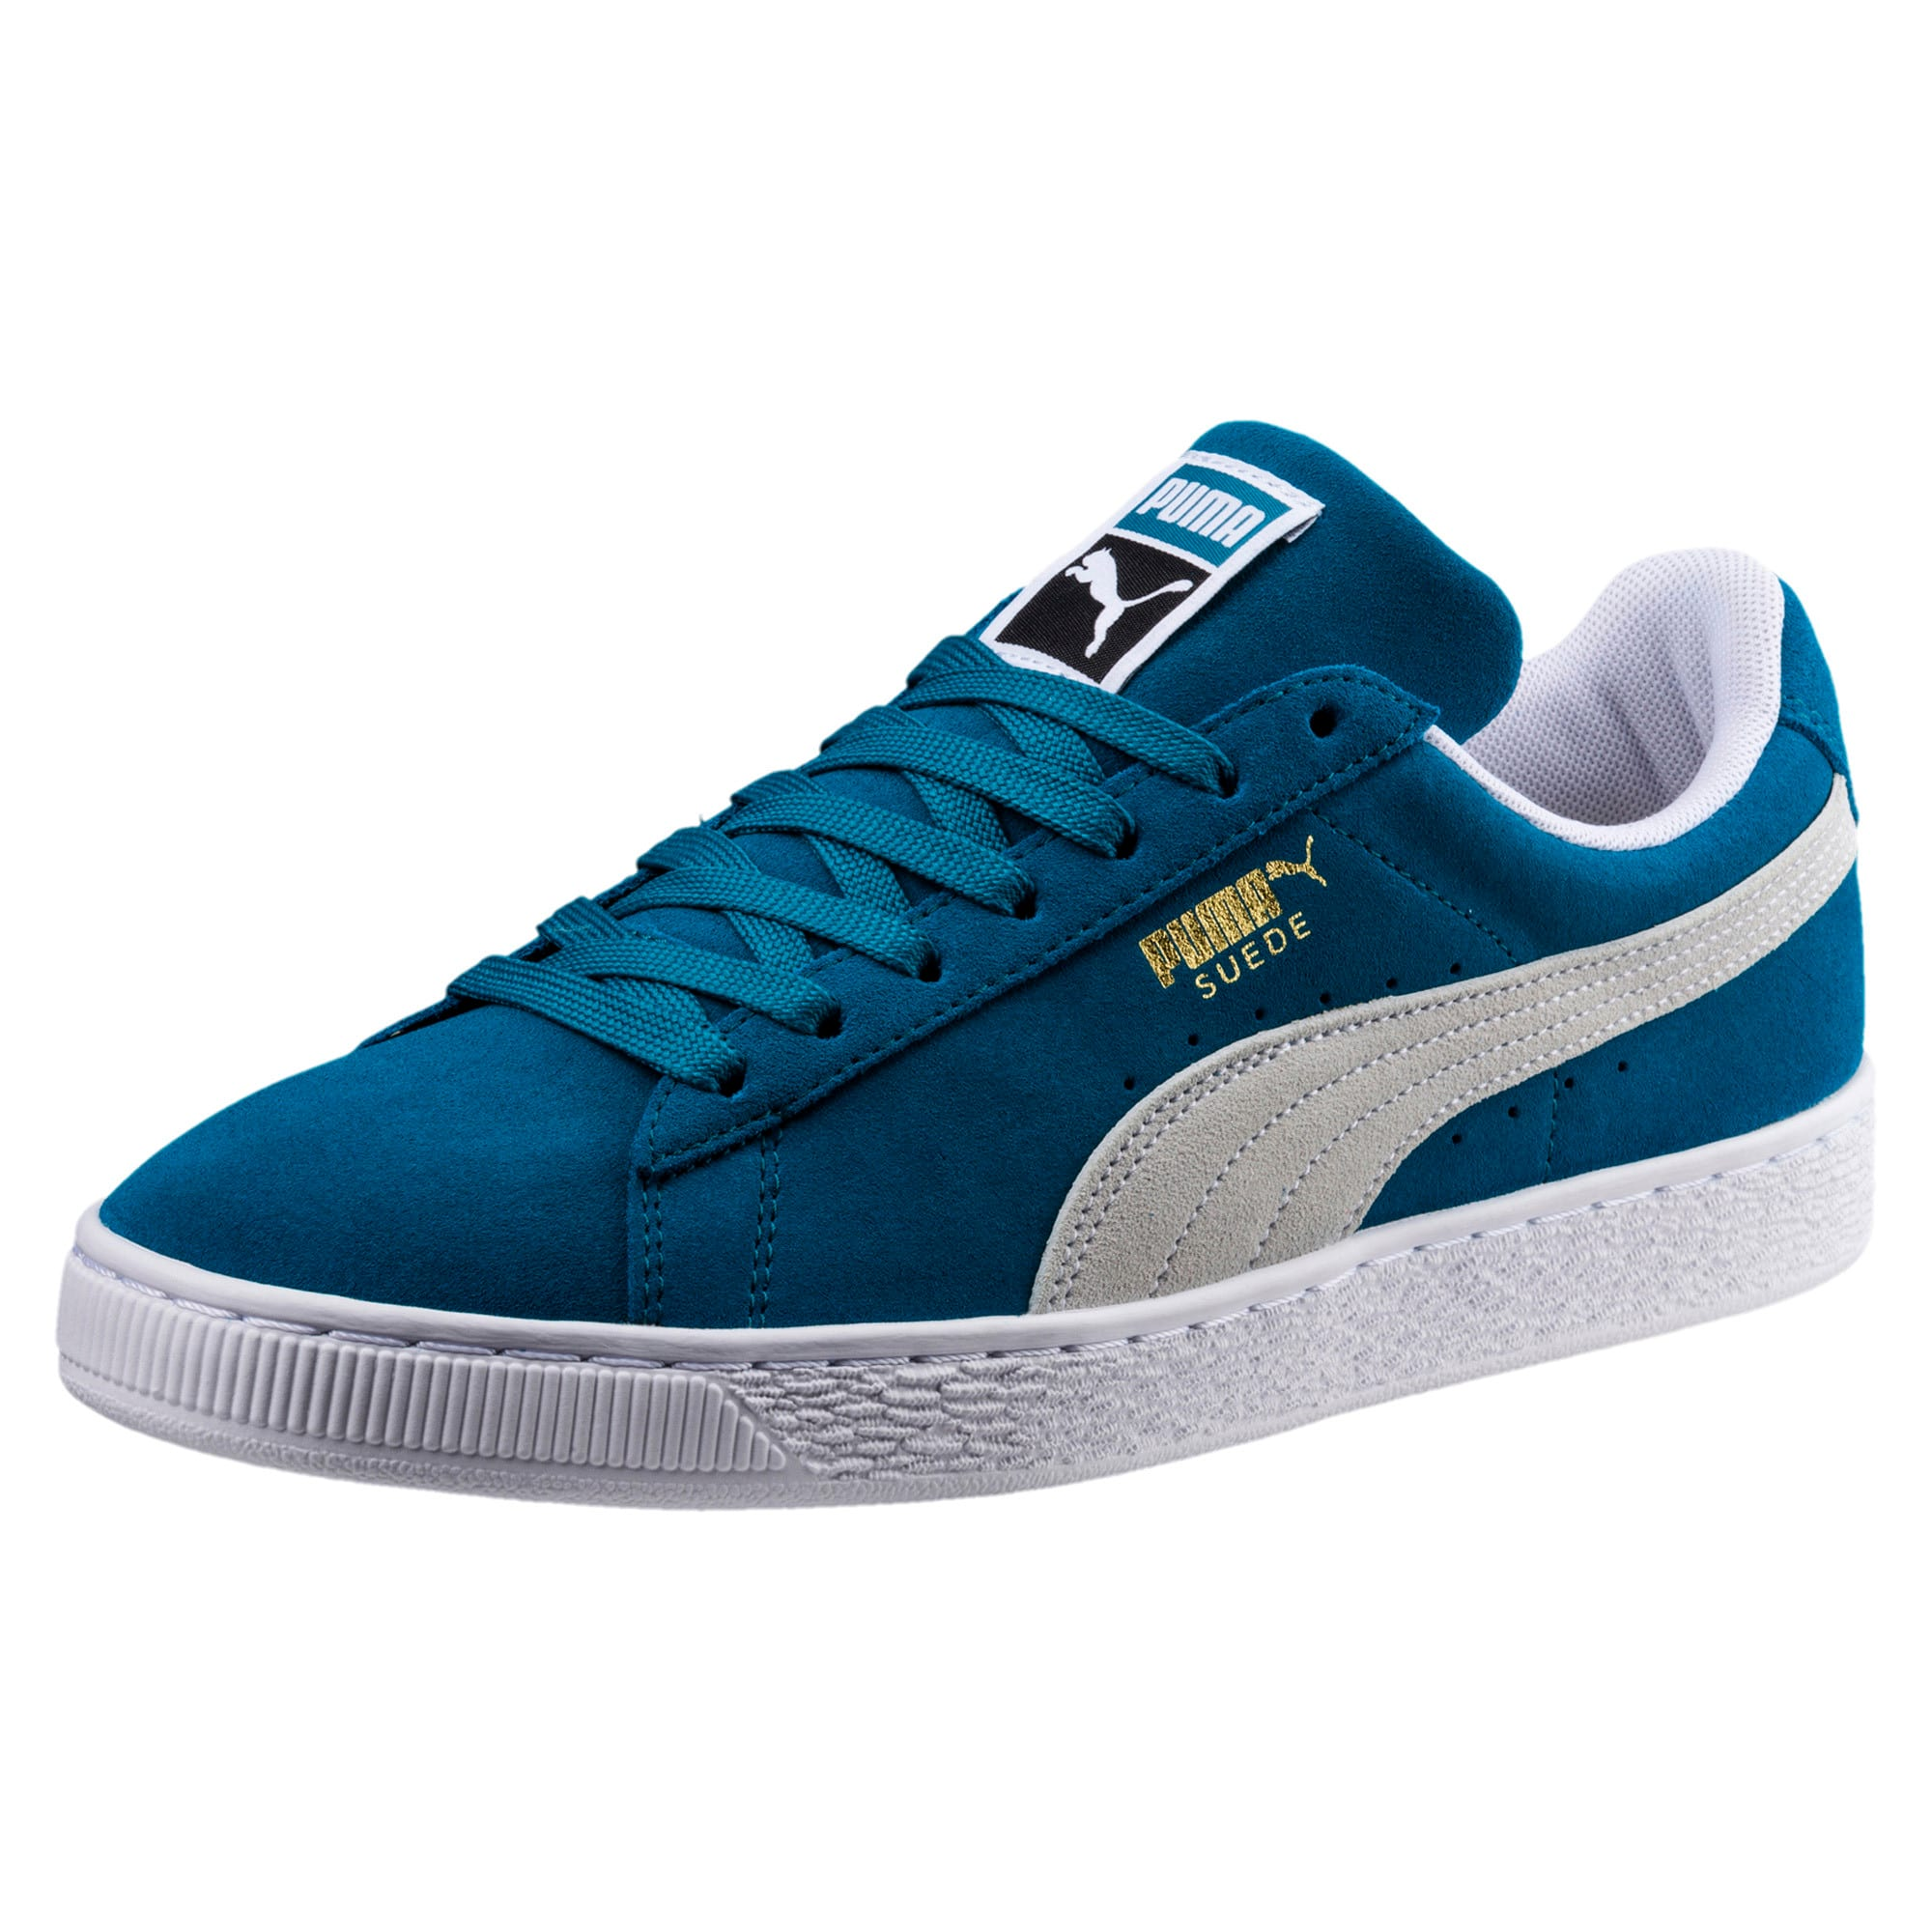 Suede Classic Sneakers, Ocean Depths-Puma White, large